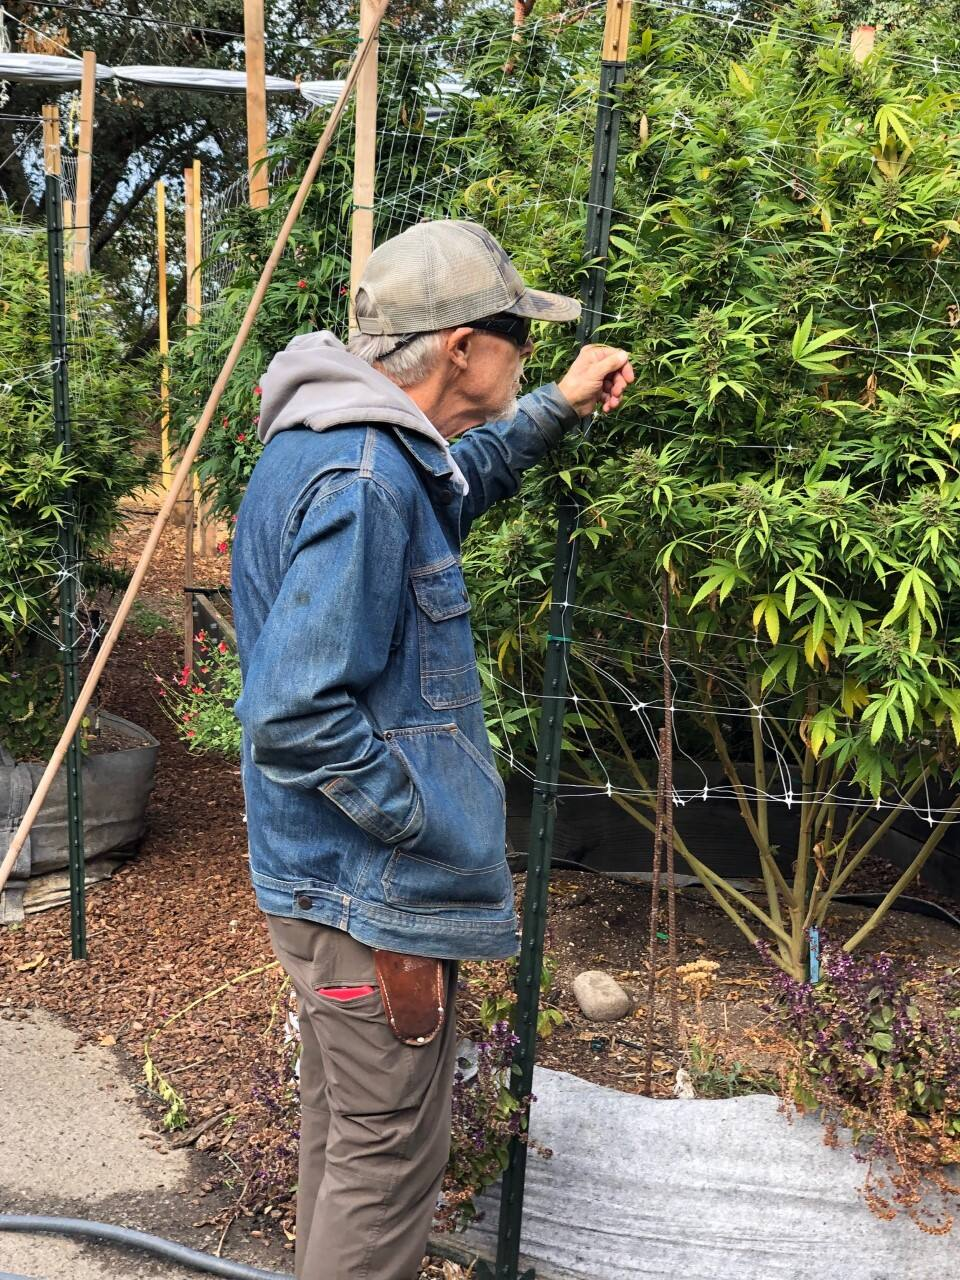 Benziger is growing three types of plants for Melrod's dispensary. Photo by Susan Wood